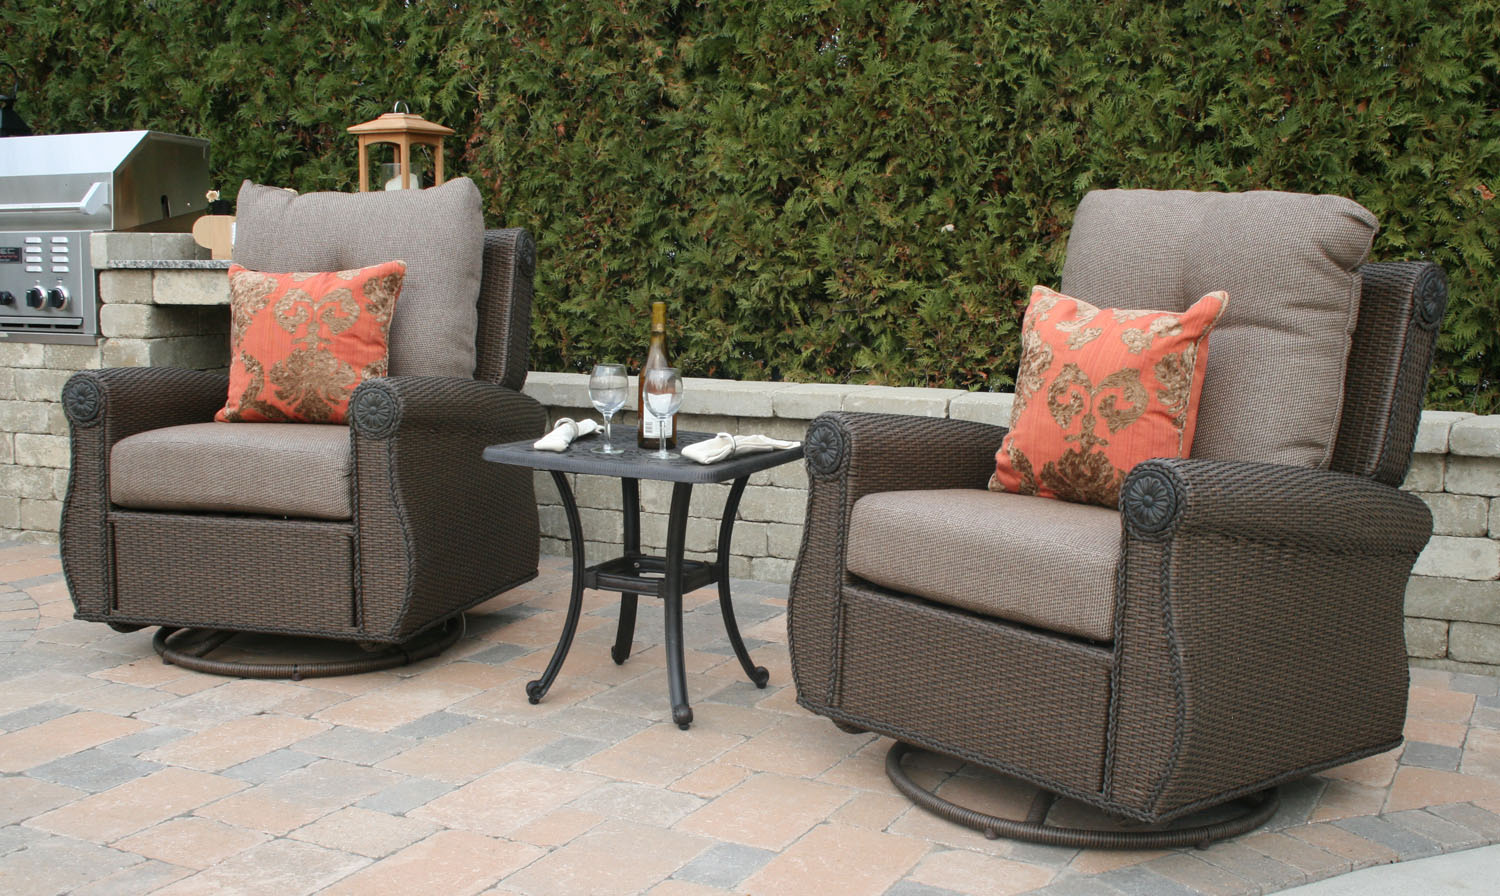 Giovanna Luxury All Weather Wicker Cast Aluminum Patio Furniture Deep Seating Chat Set